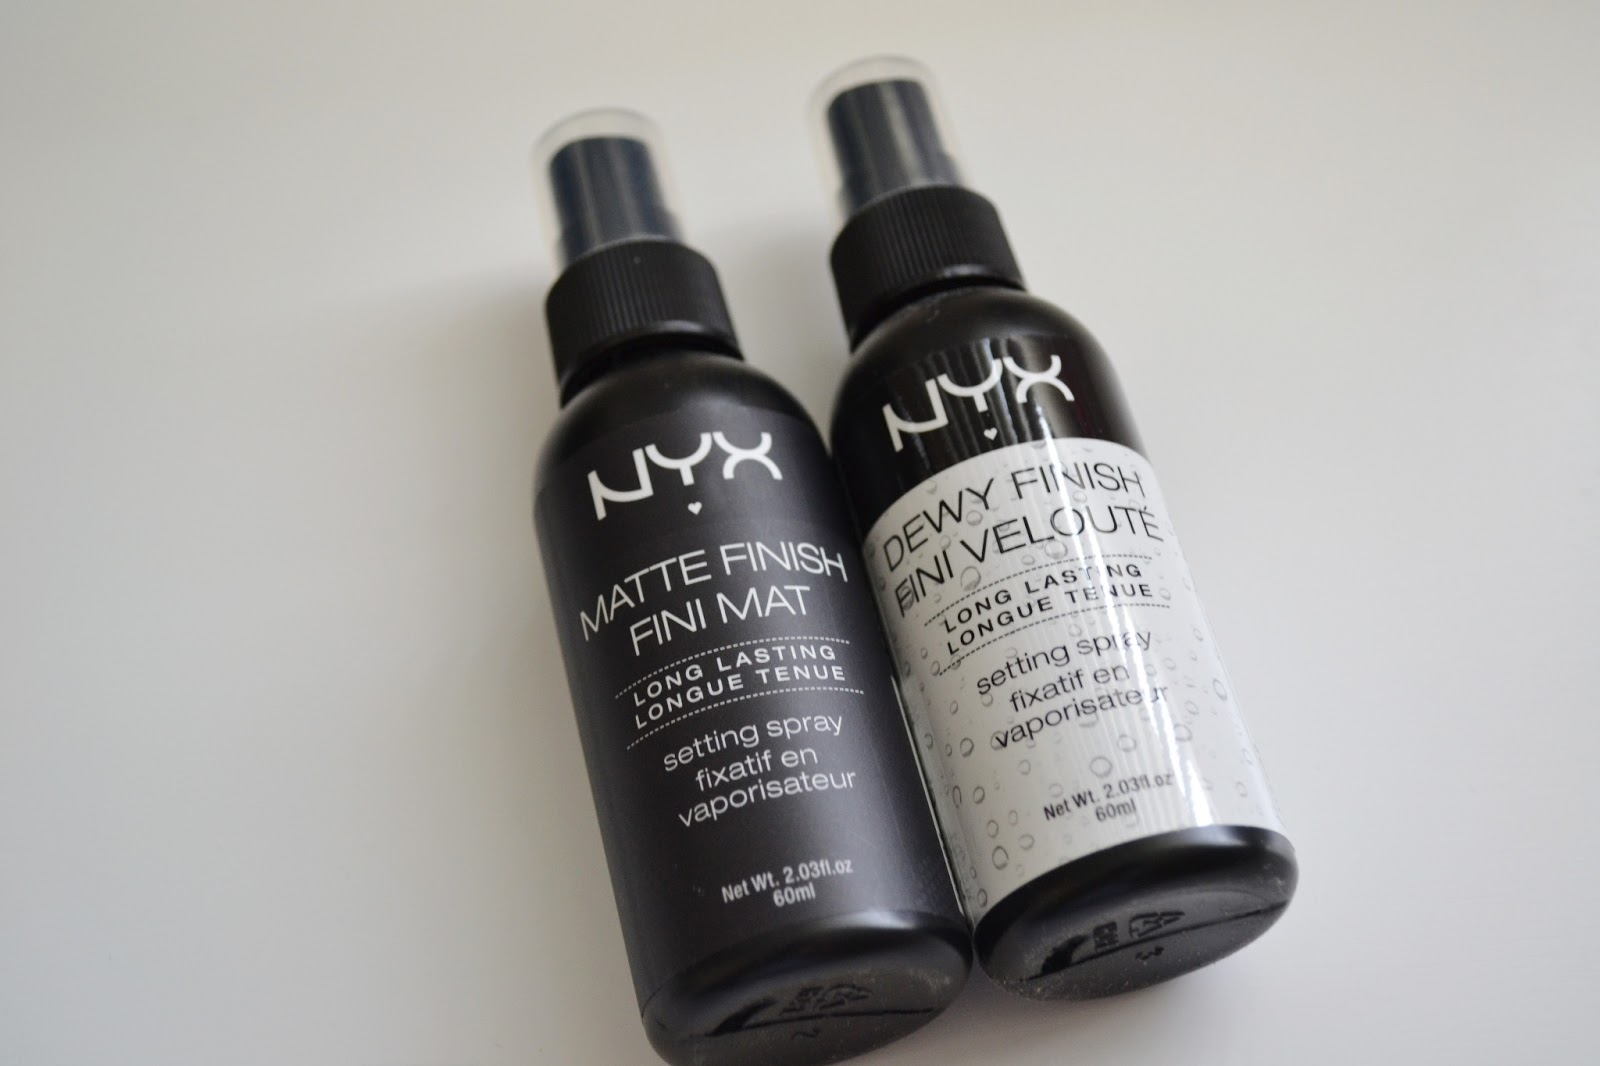 Dewy Finish Makeup Setting Spray by NYX Professional Makeup #13